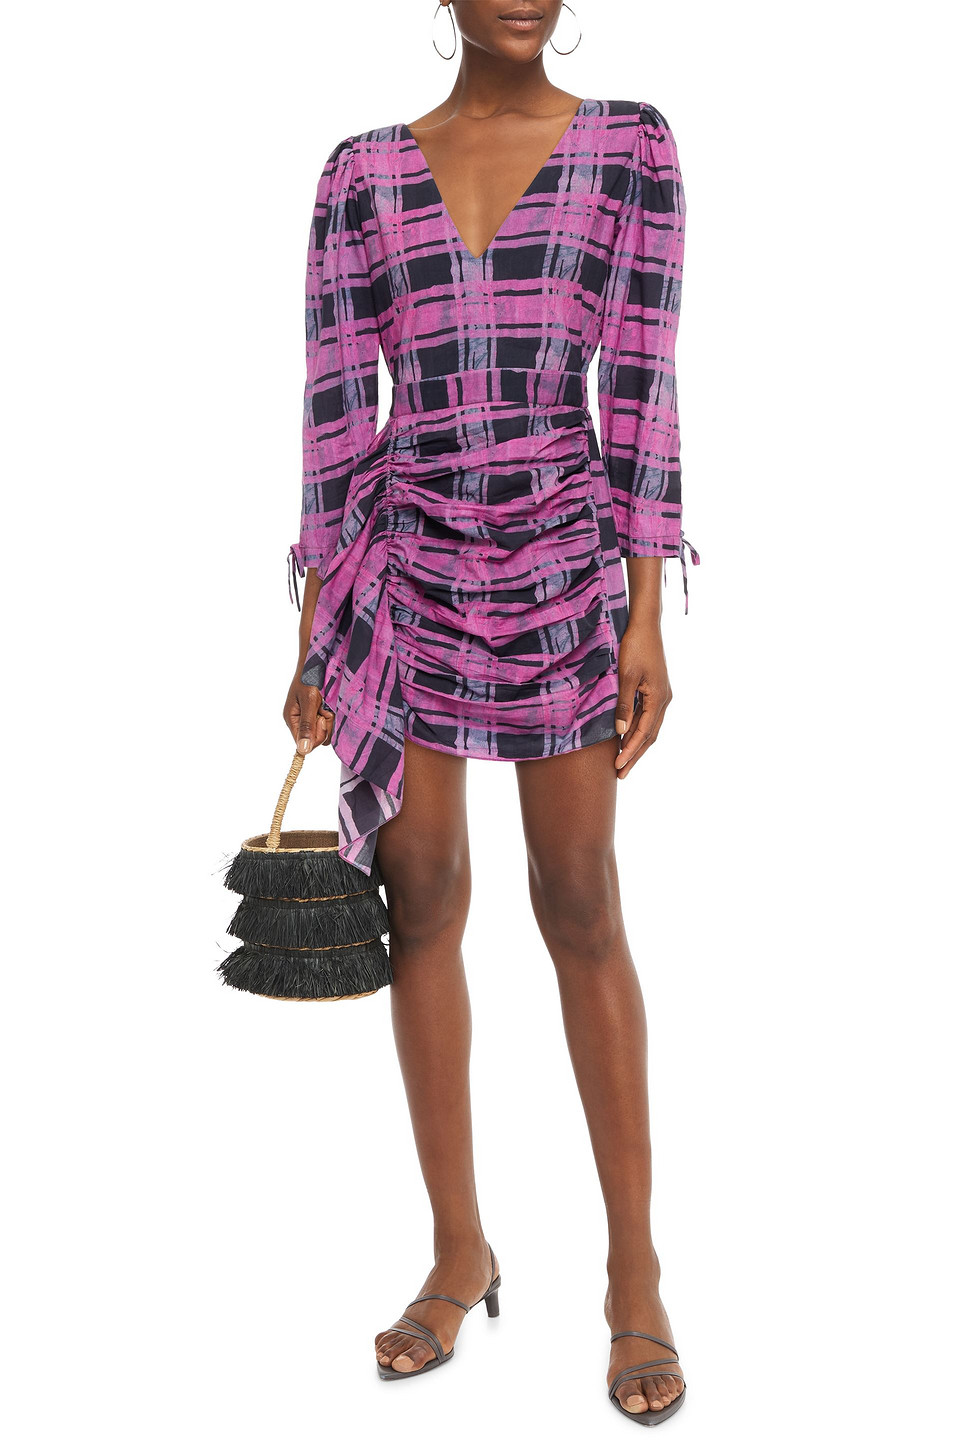 RHODE | Rhode Woman Piper Ruched Printed Cotton Mini Dress Magenta | Clouty